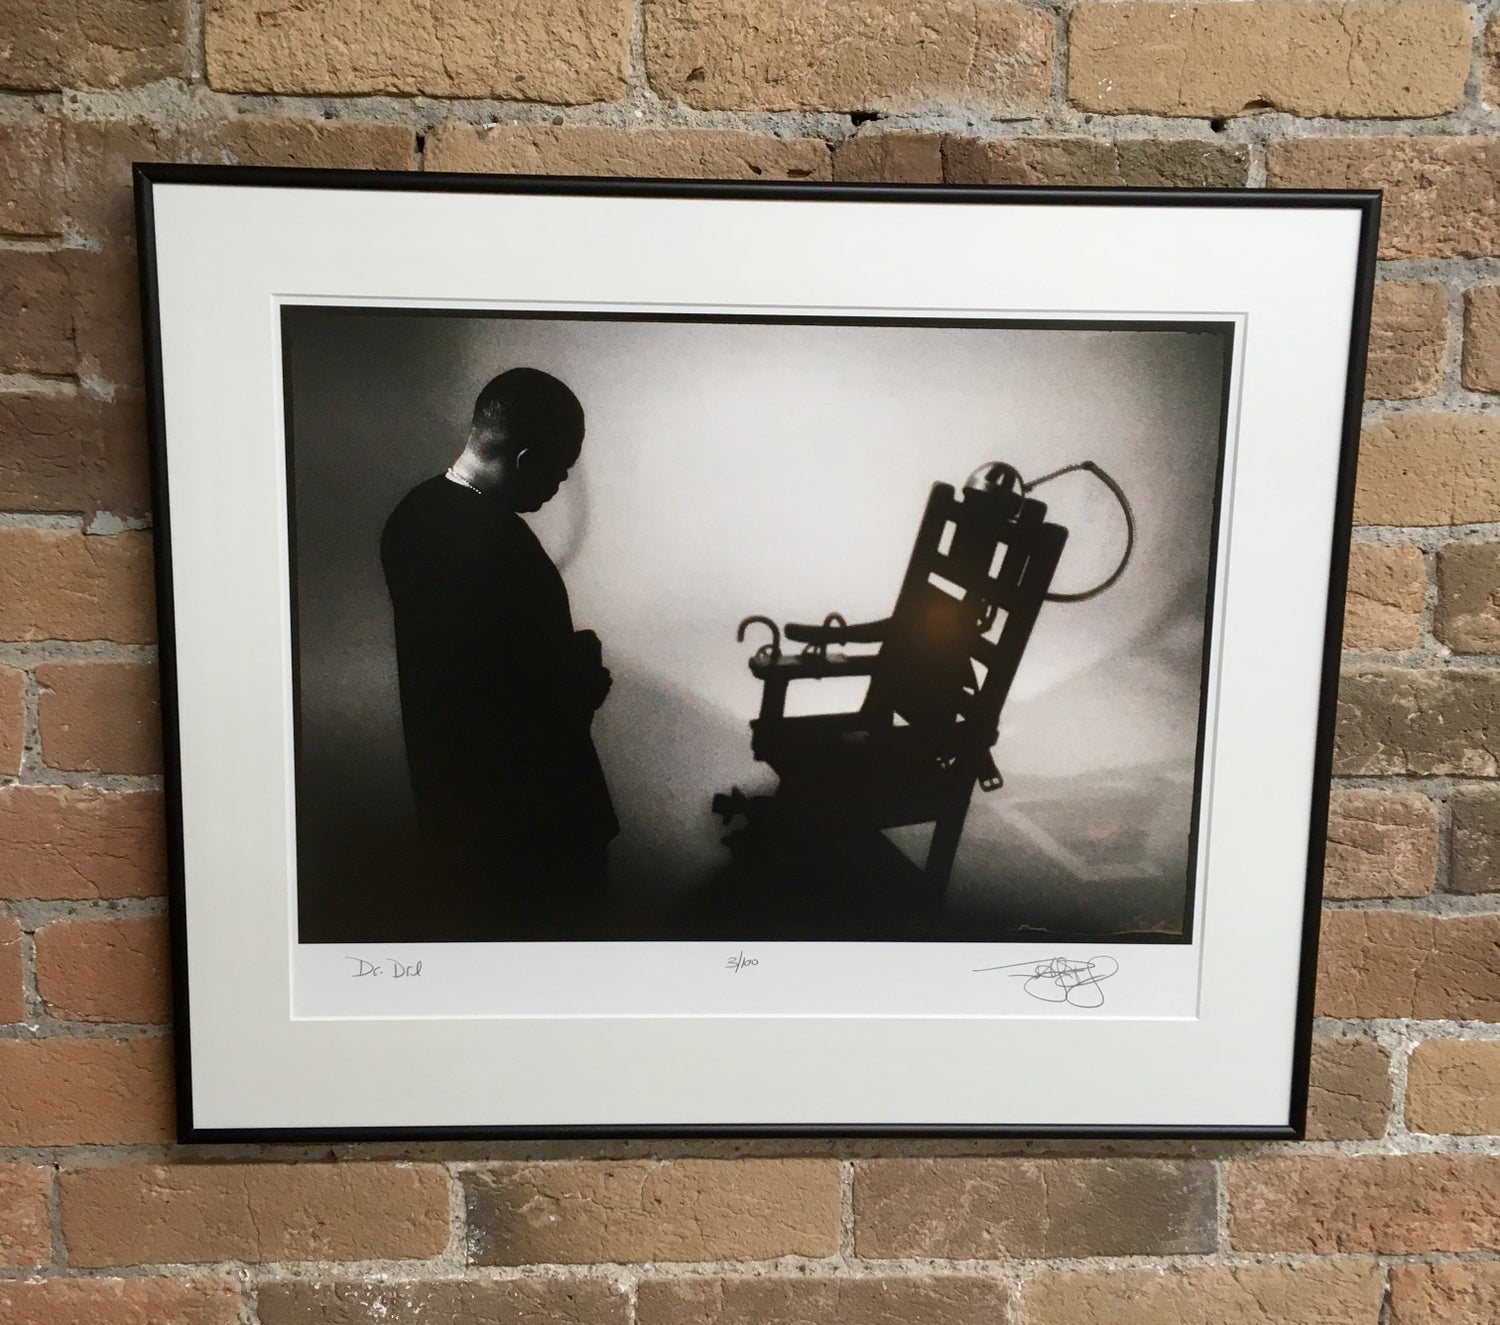 Image of Dr. Dre (Los Angeles, CA, 1996) :: Limited Edition Custom Framed Fine Art Print